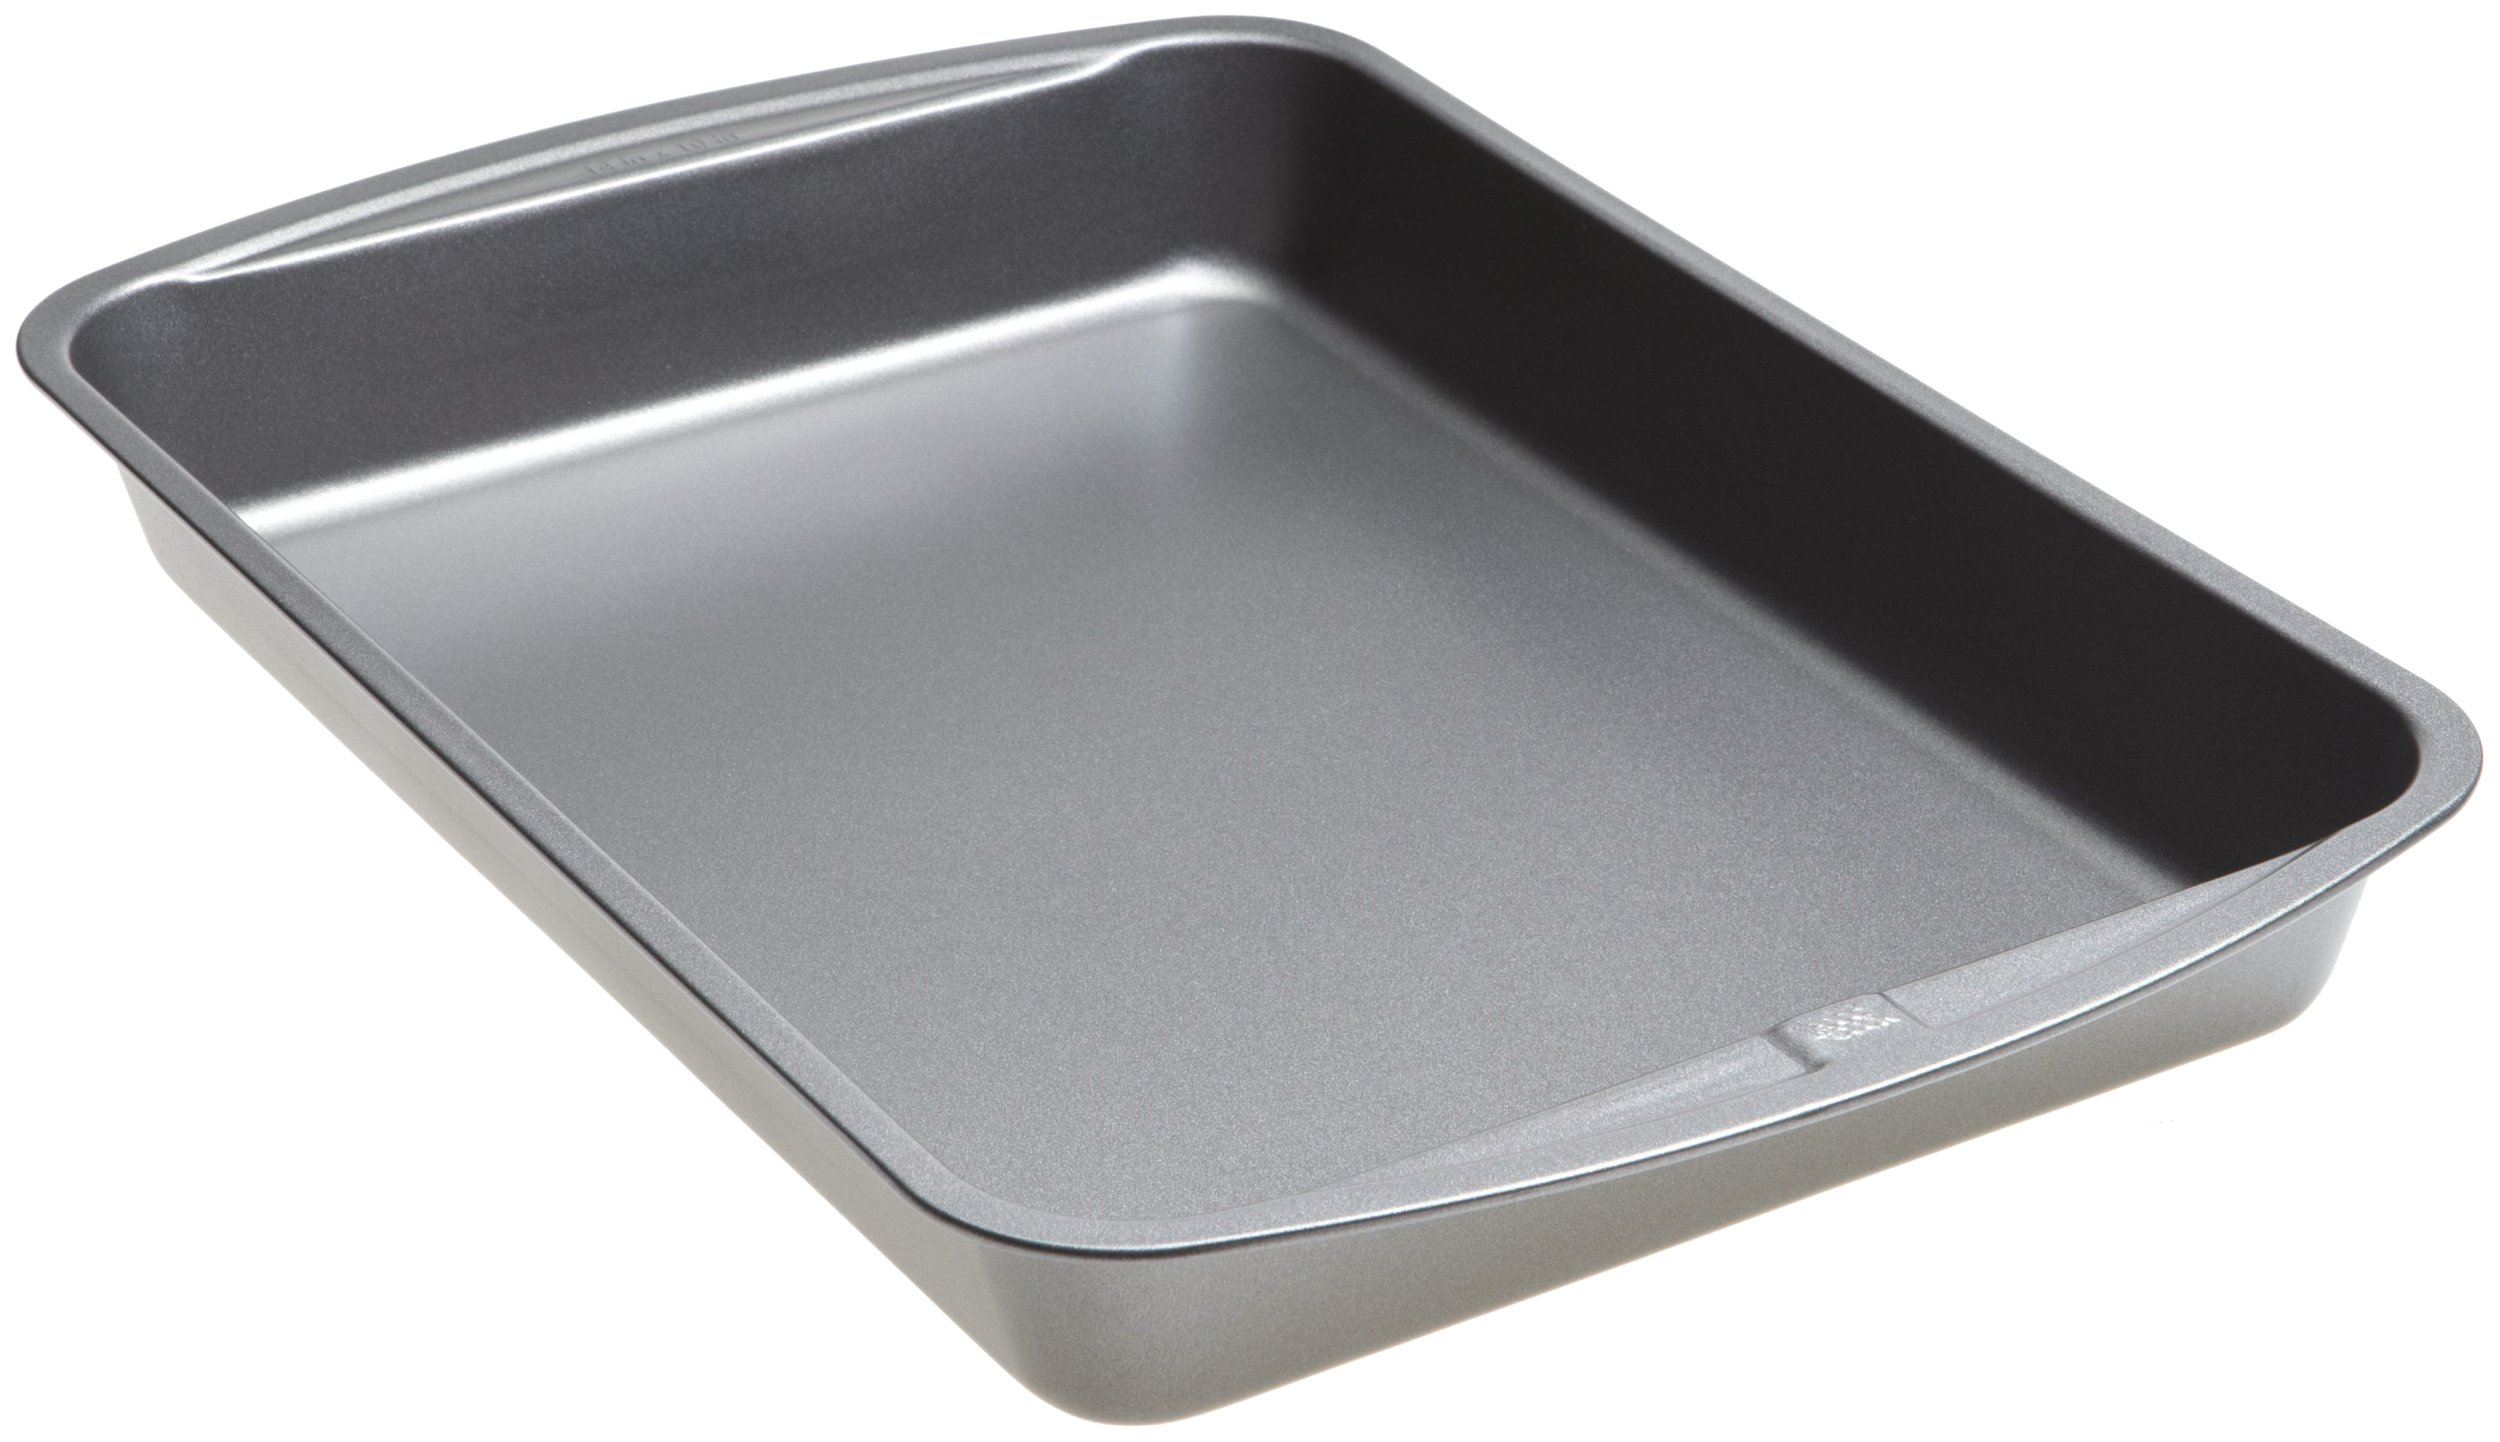 Good Cook 14 Inch x 10 Inch Lasagna Pan by Good Cook